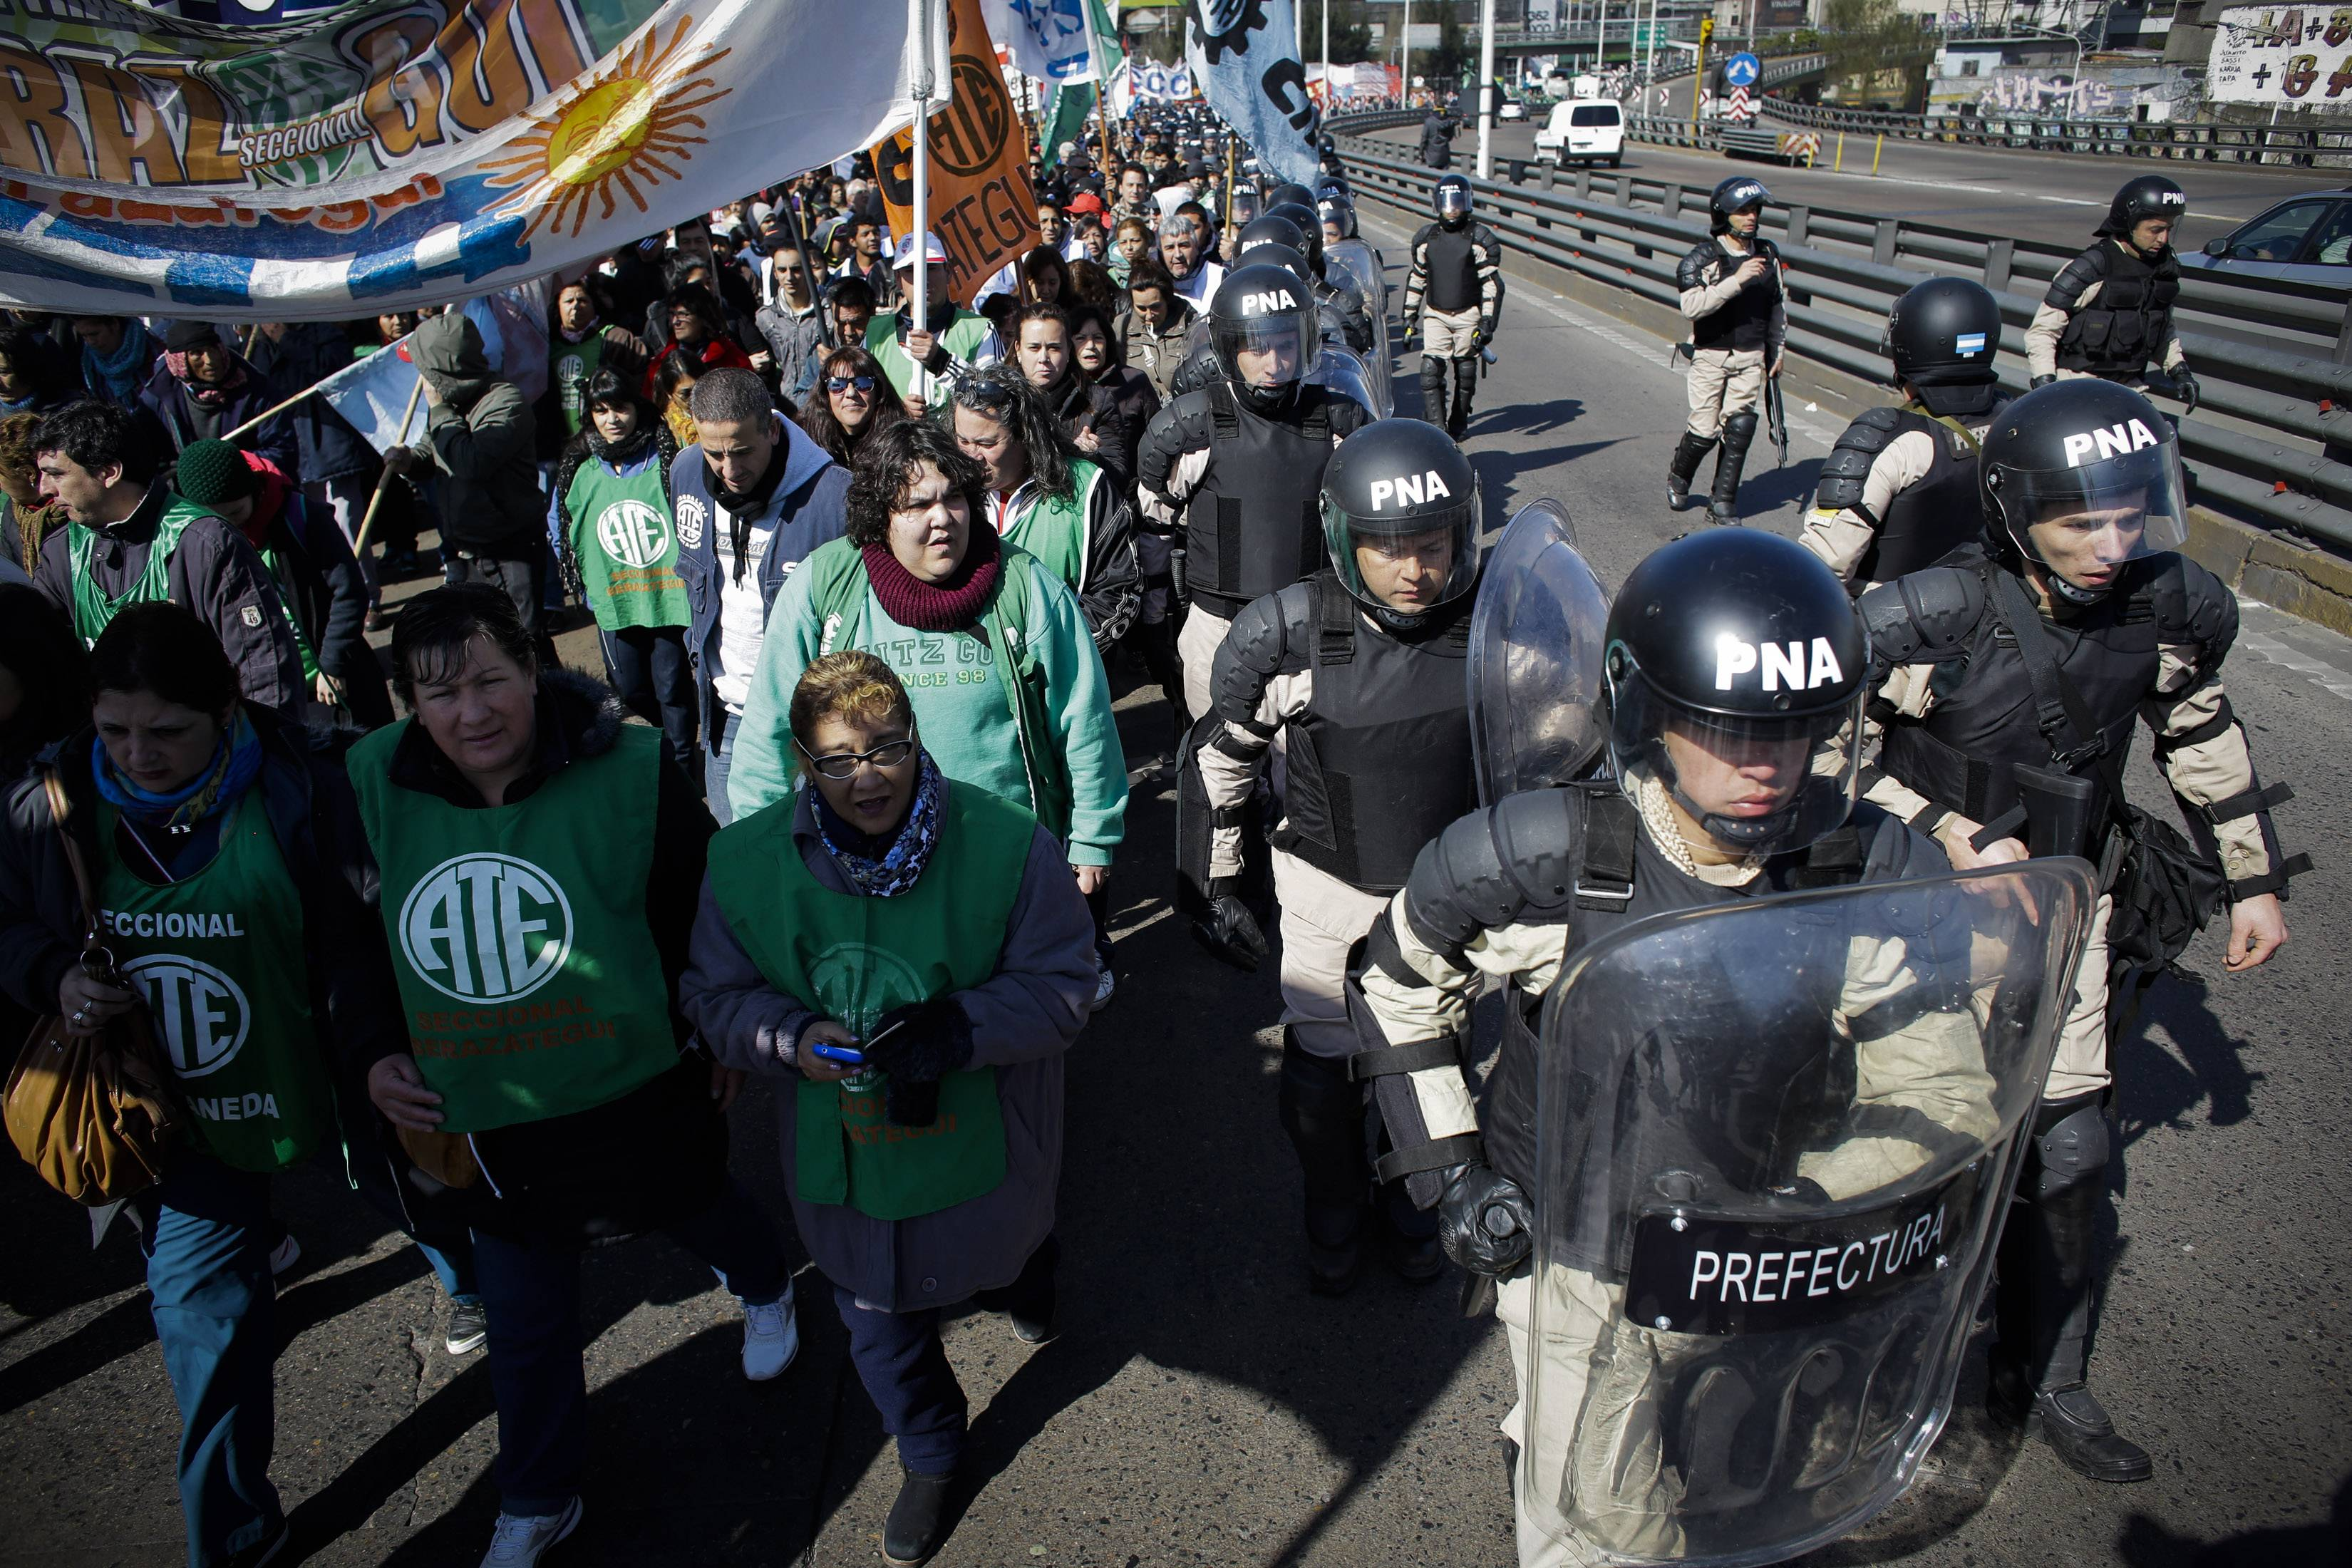 Riot police cordon off protesters partially blocking one of Buenos Aires' main access routes over the Riachuelo River in Argentina. CTA, a union umbrella group that opposes the government, started a 36-hour strike to demand more jobs, better salaries and tax cuts on salaries.